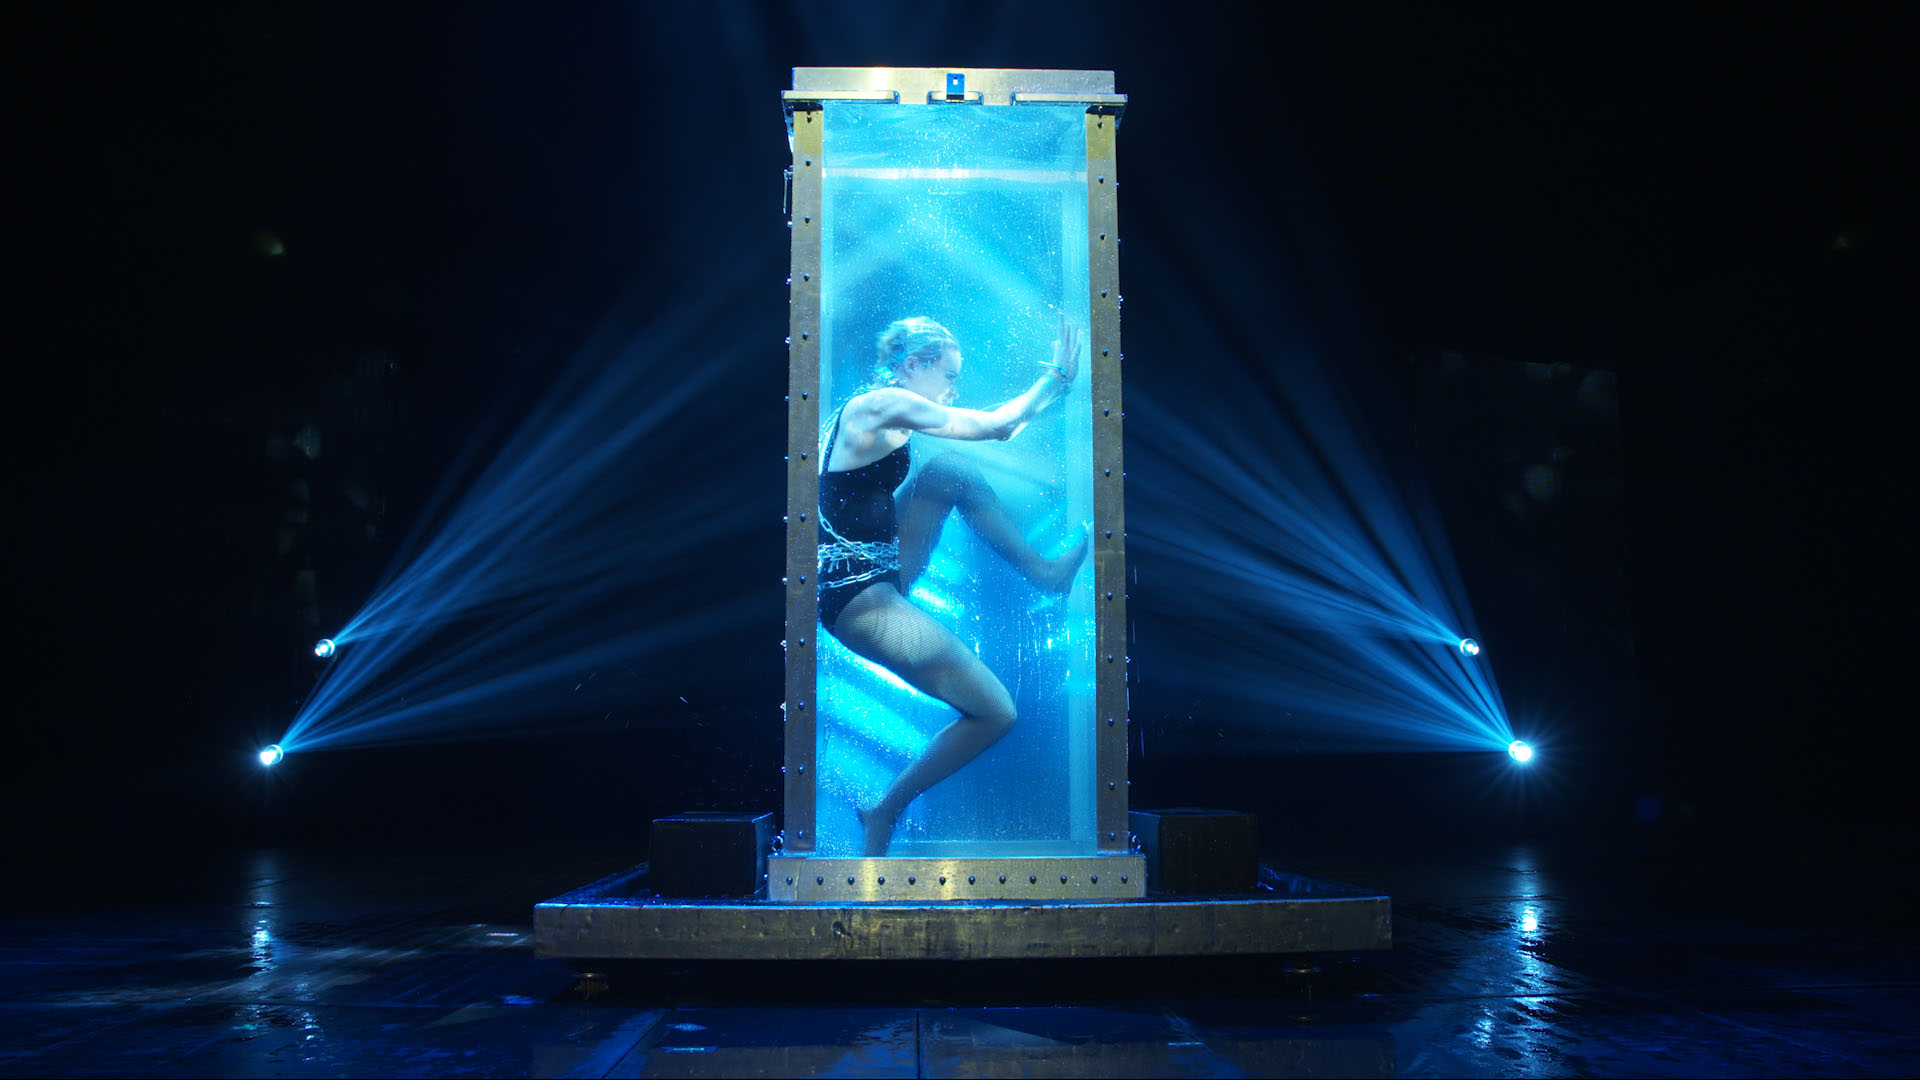 Creative Design Agency In Los Angeles For Now You See Me Live With Illusionist Sabine Van Diemen